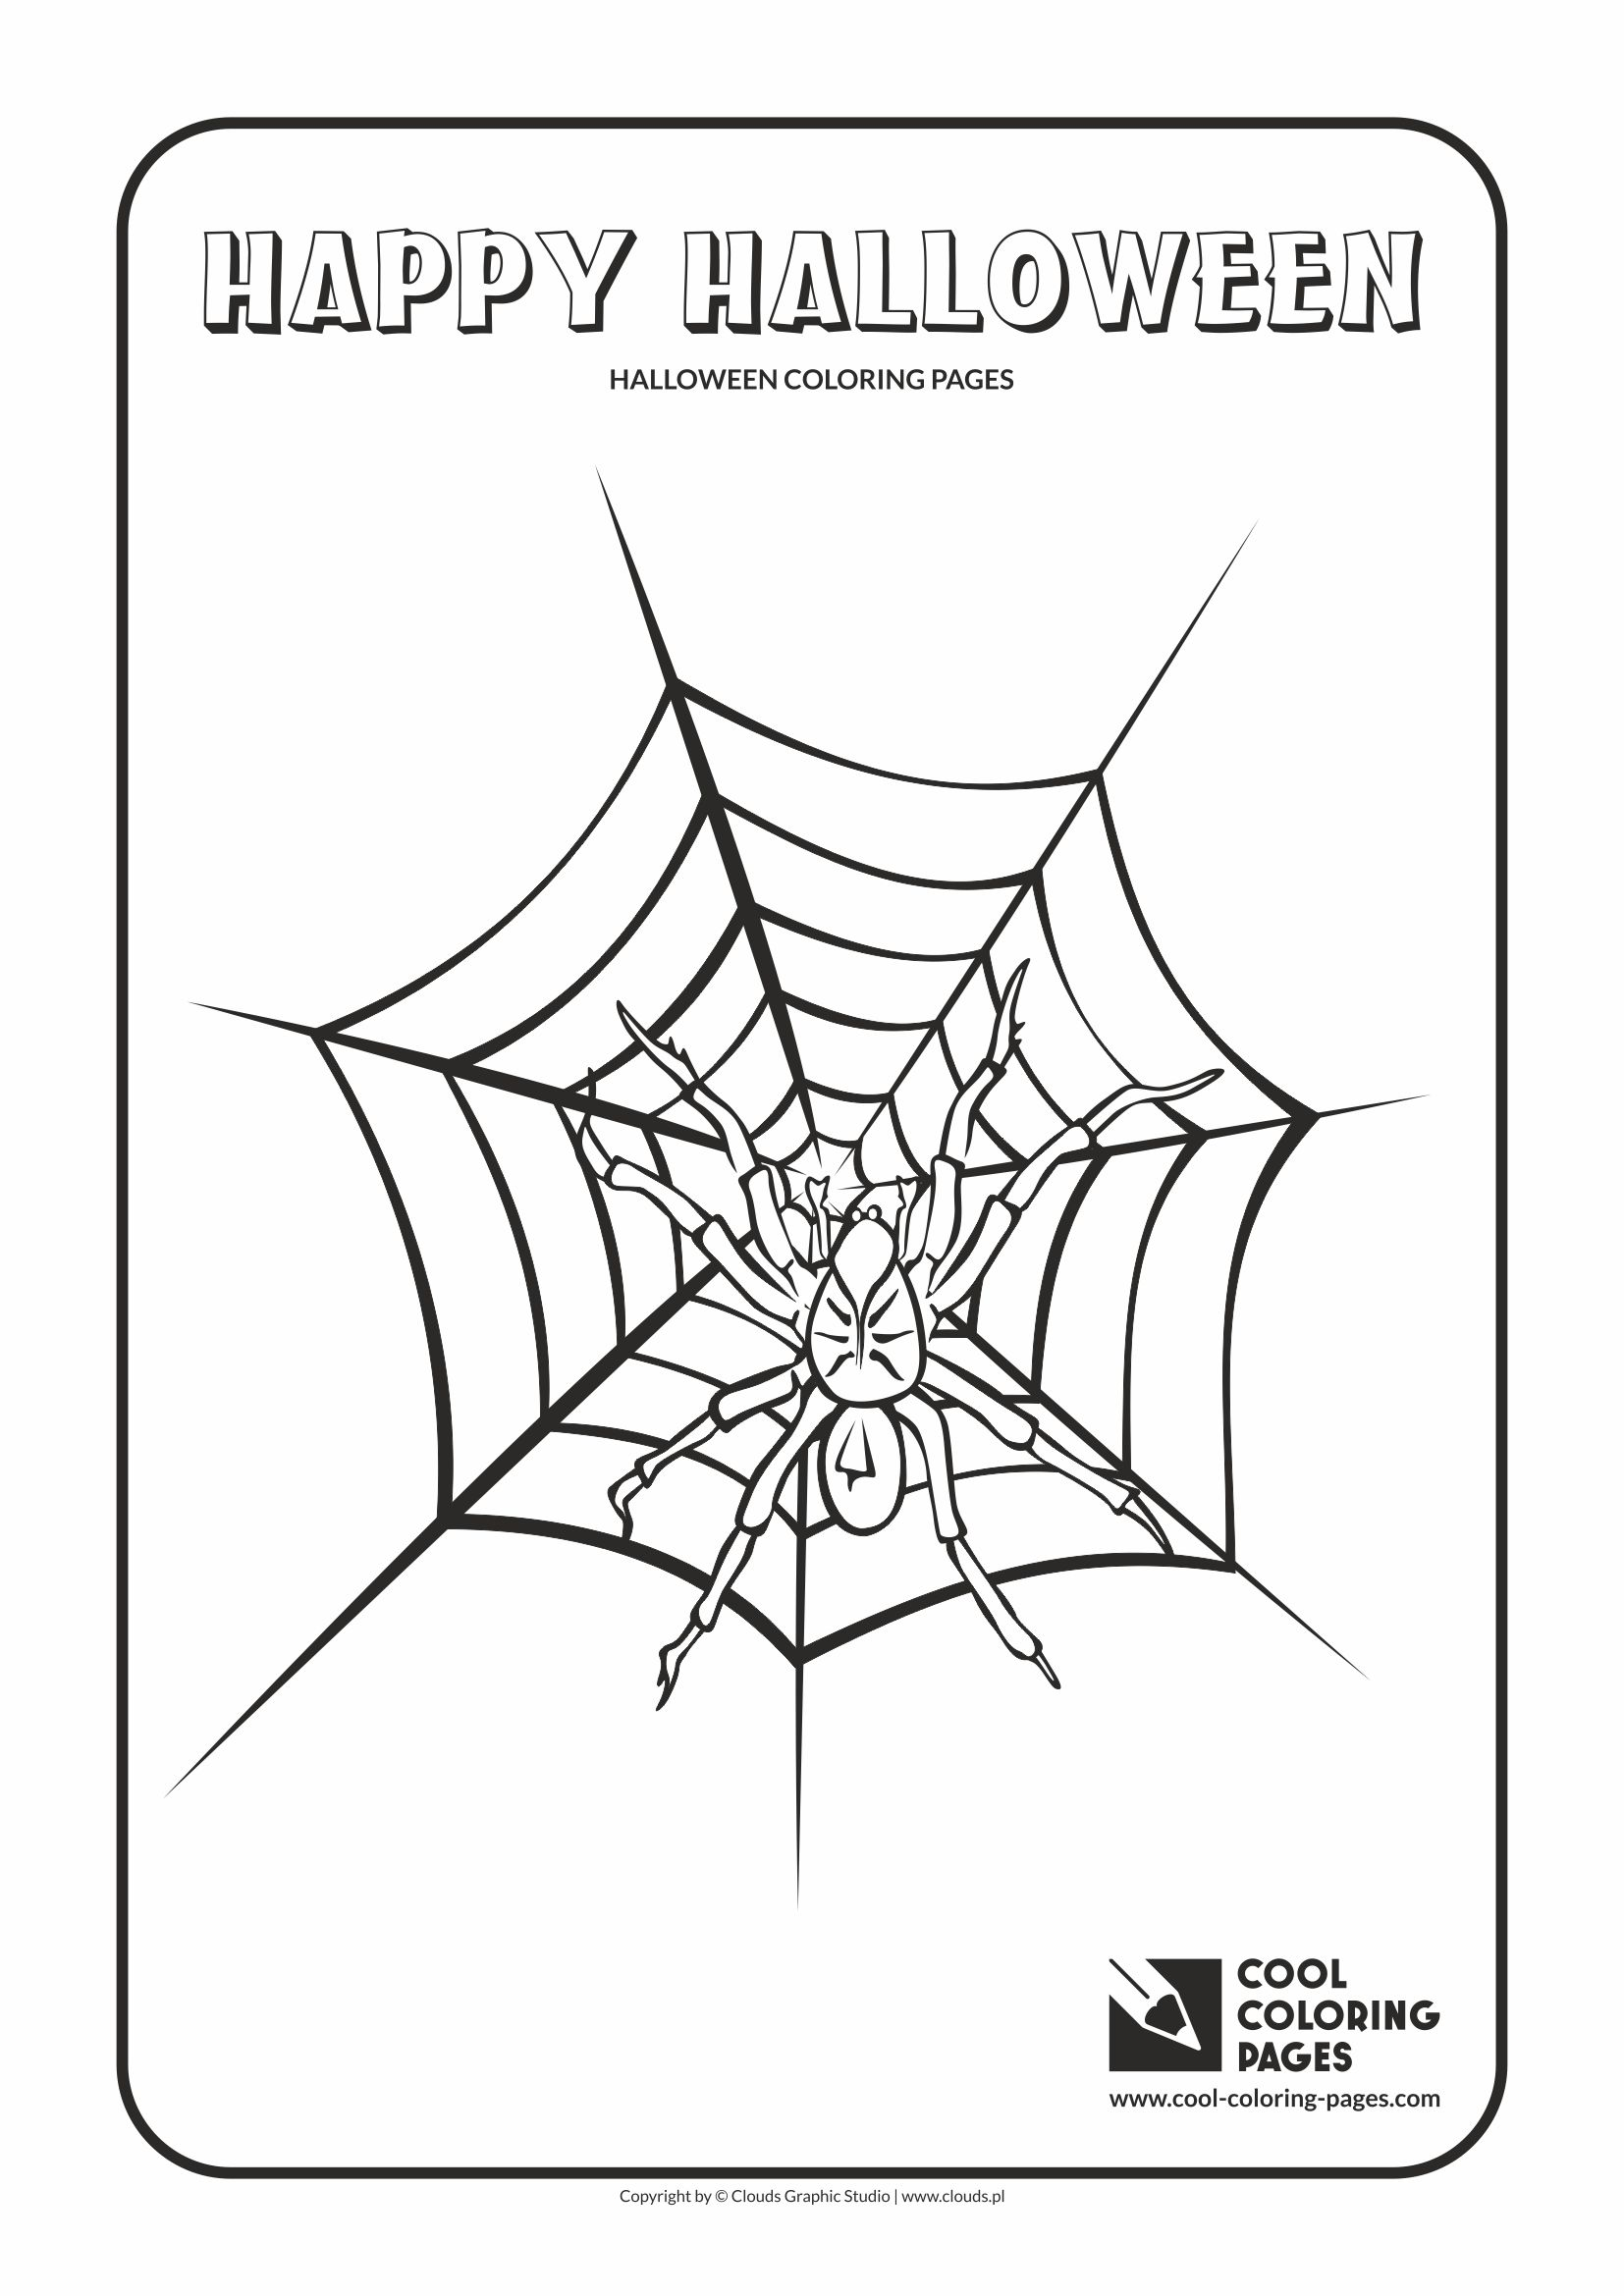 cool coloring pages holidays halloween spider coloring page with halloween spider - Cool Colouring Pages